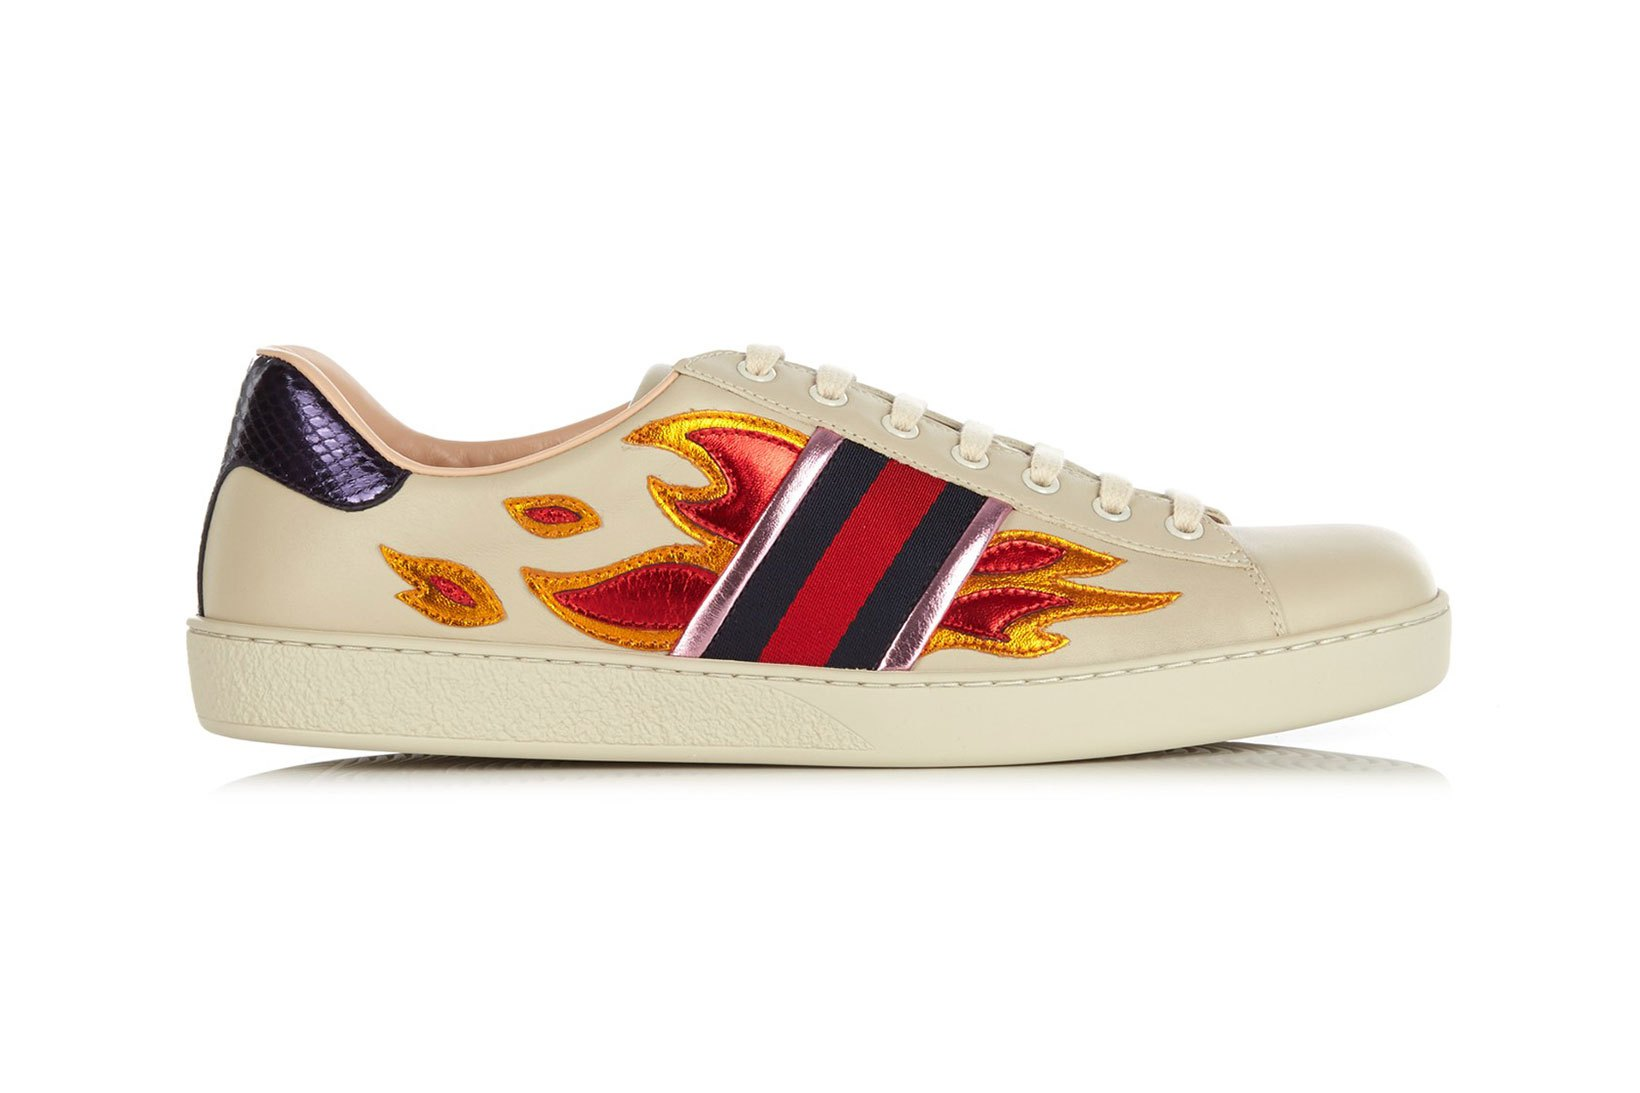 Gucci Launches New Metallic Flame Low Top Trainers